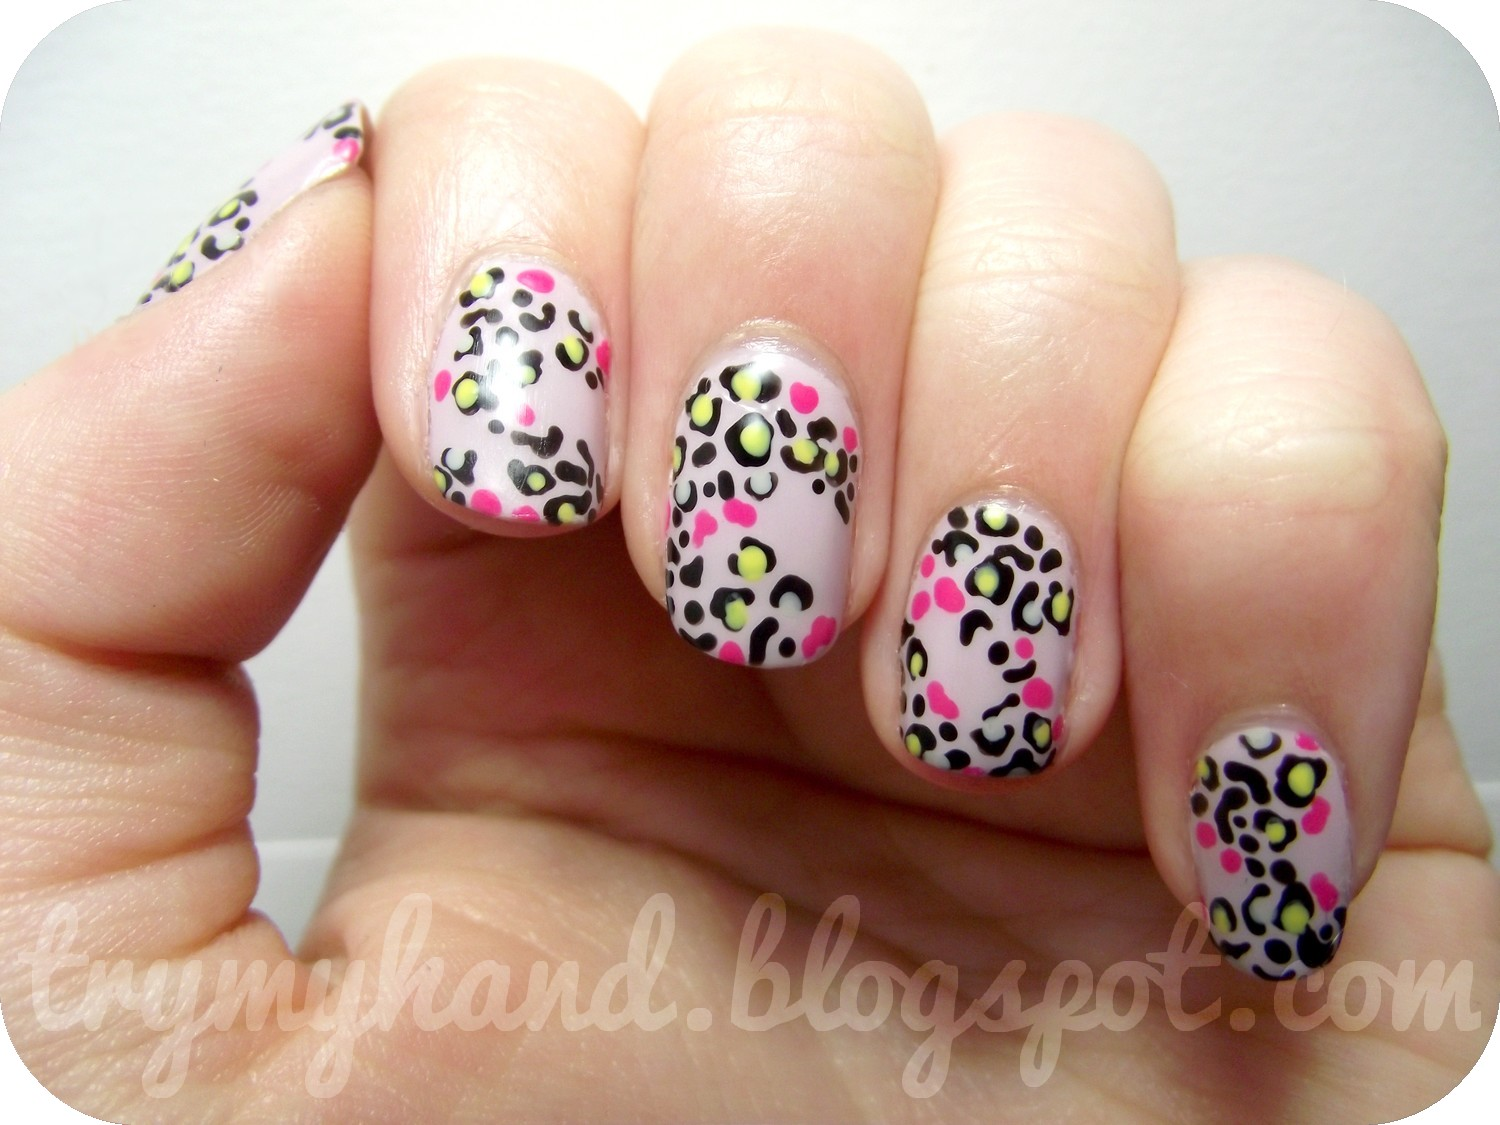 Try My Hand: Leopard dress inspired nails